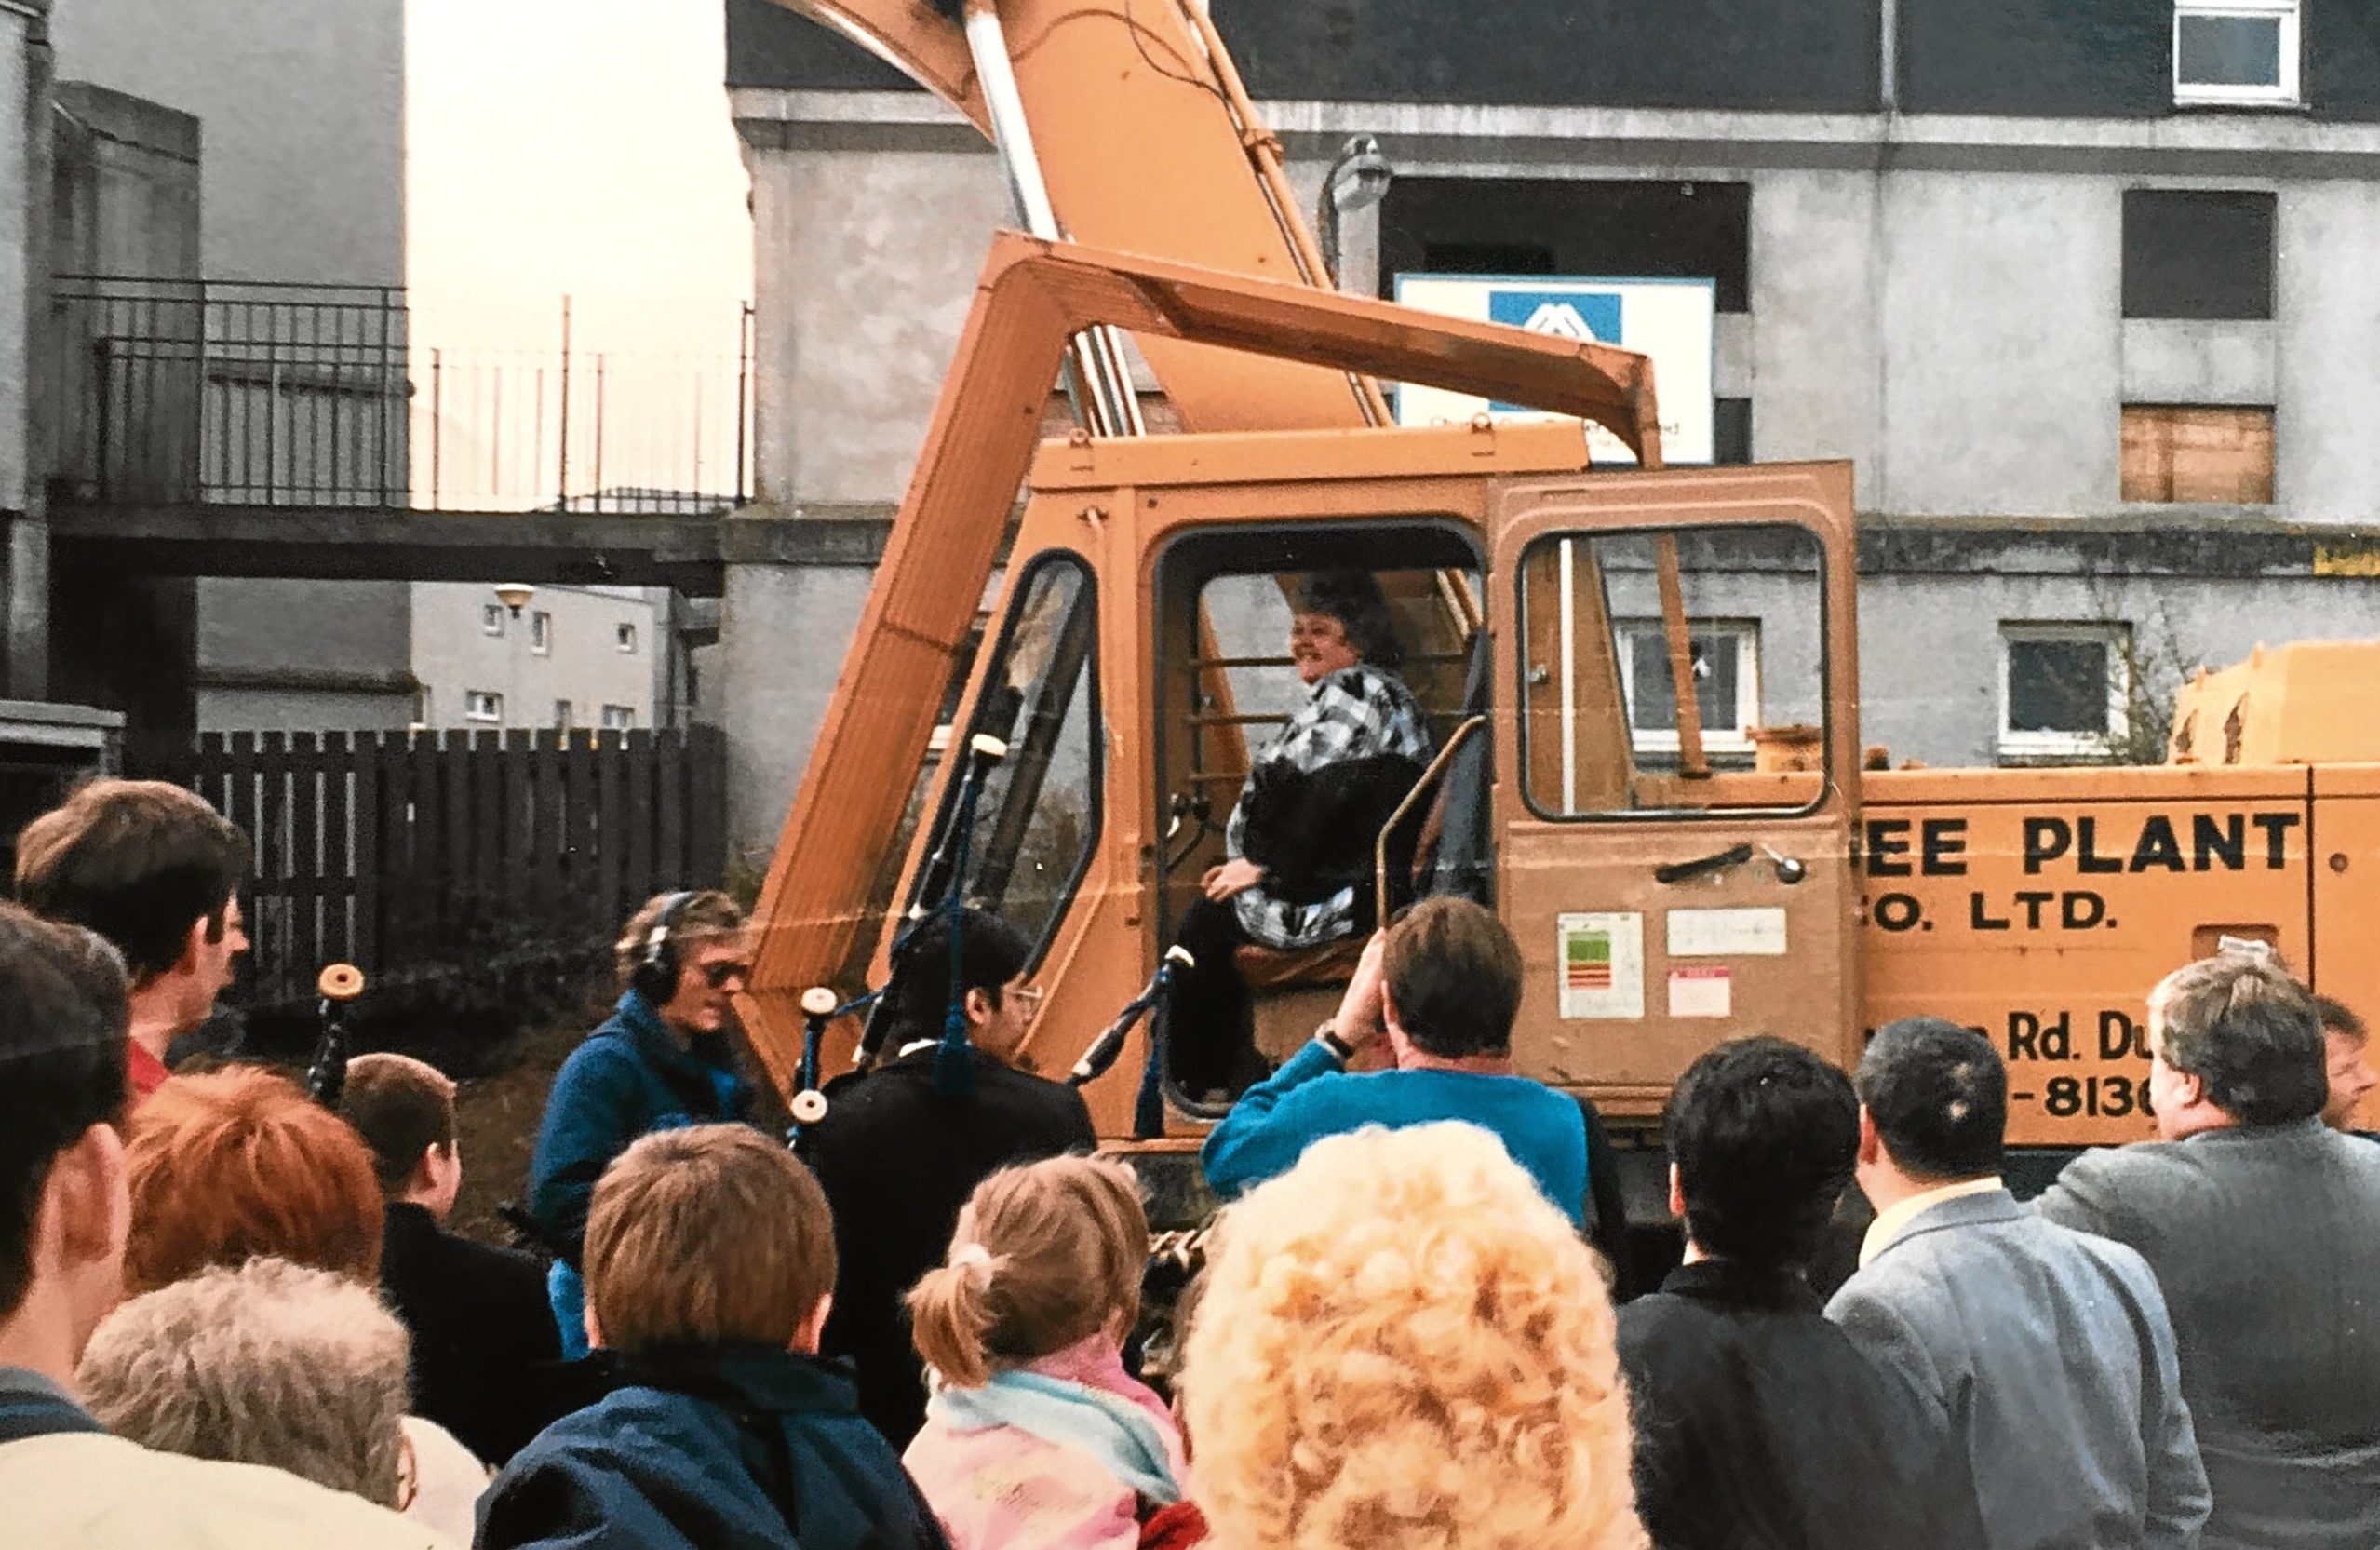 Jane driving a digger during the demolition of flats.